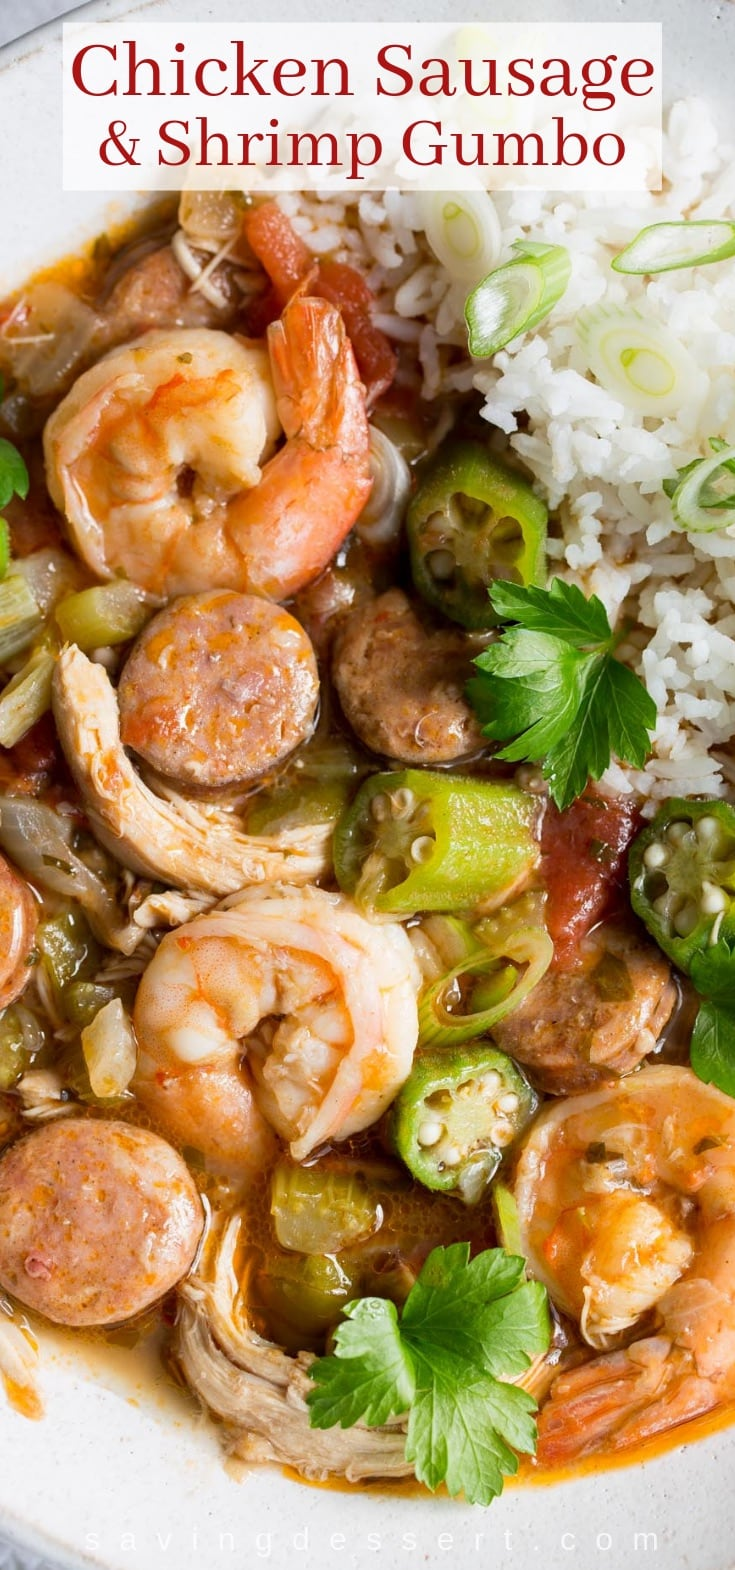 A bowl of chicken, sausage and shrimp gumbo over rice